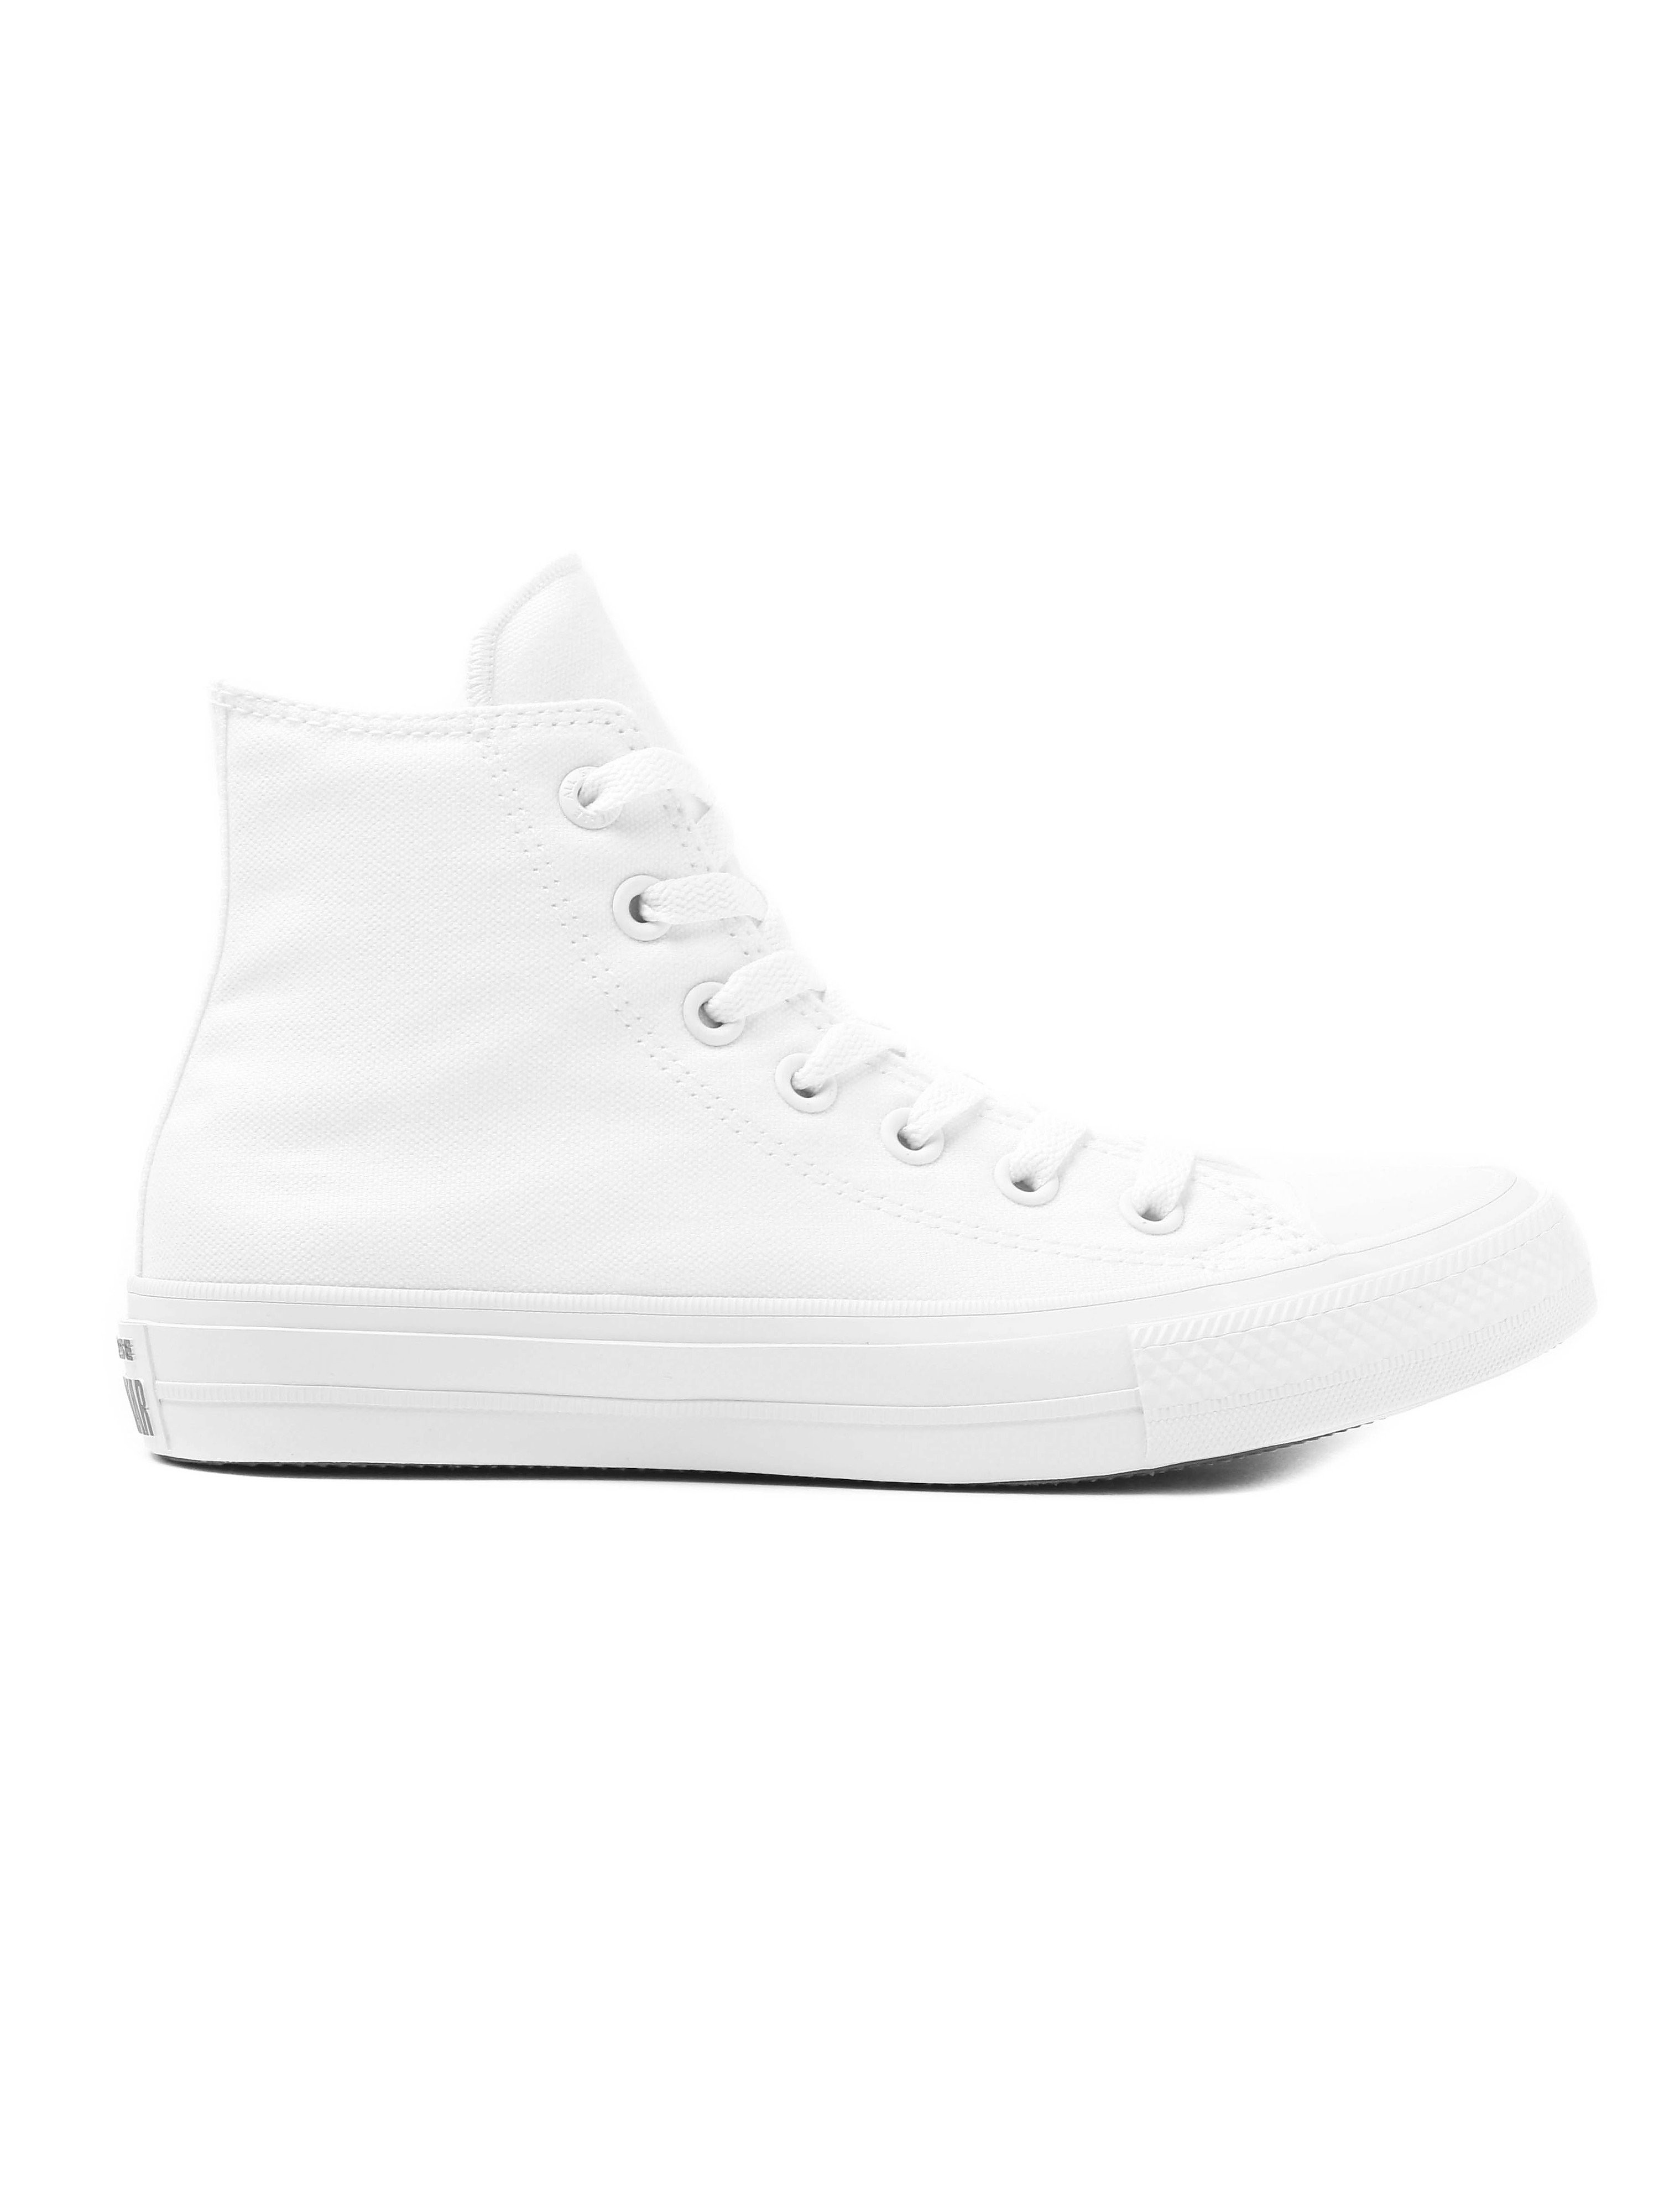 Converse Women's Chuck Taylor All Star II HI Trainers - White